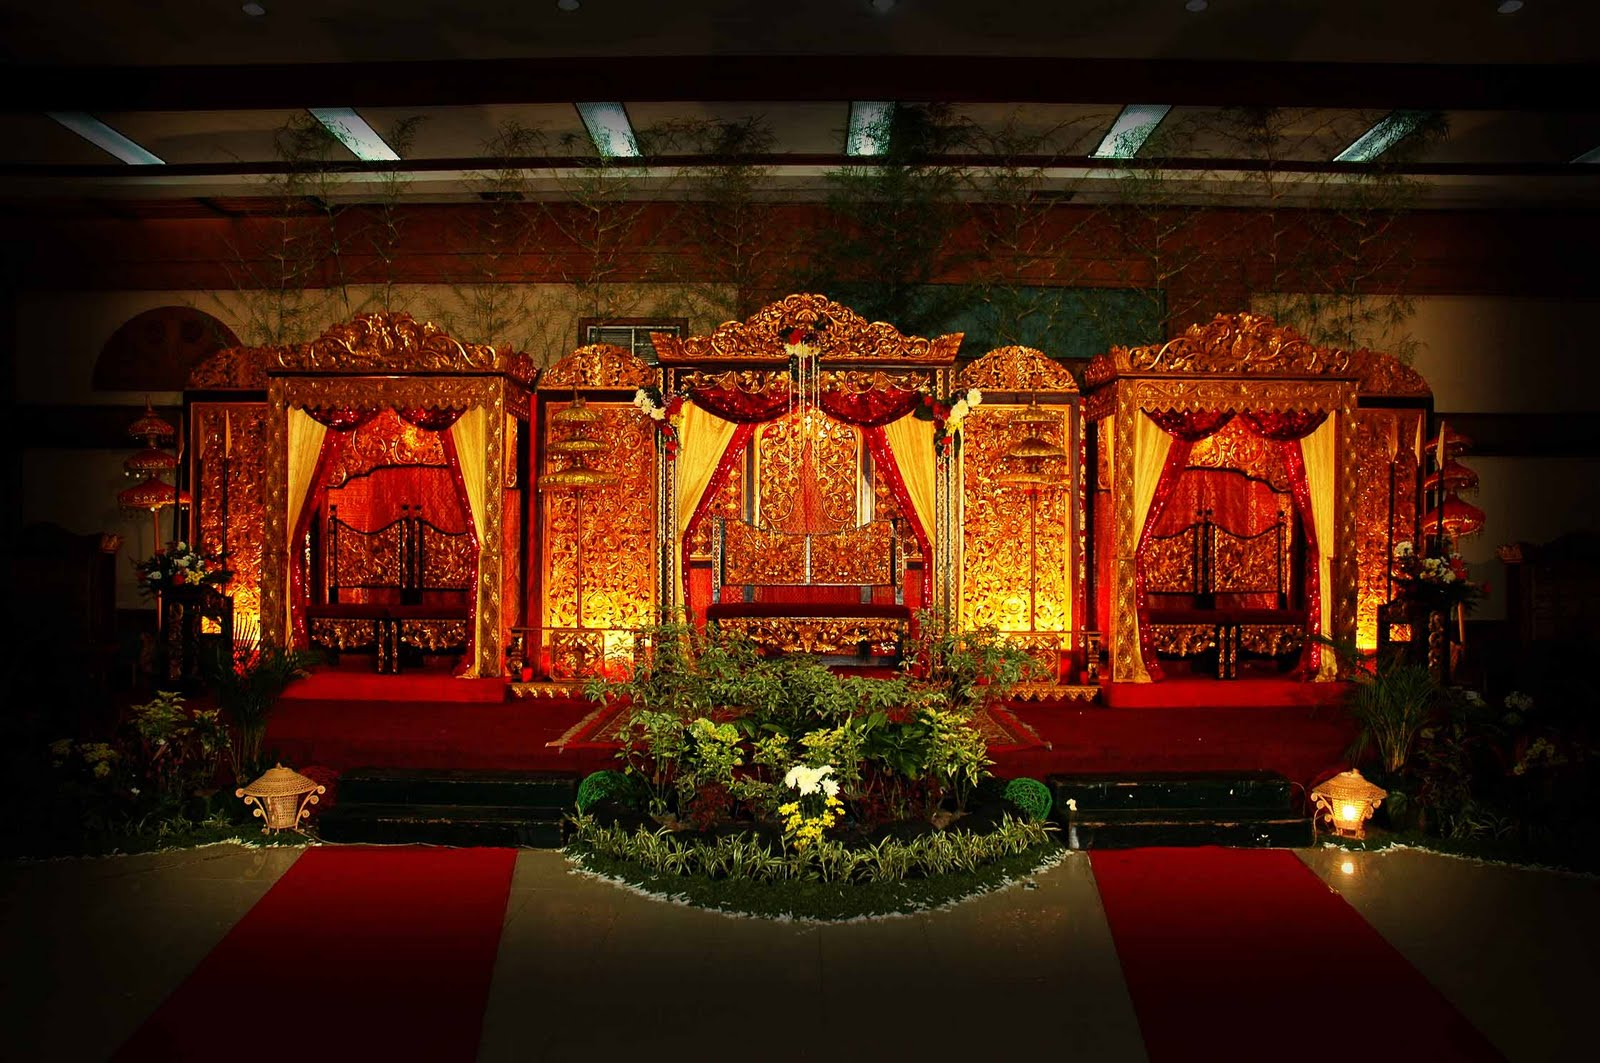 Wallpaper Backgrounds Indian Wedding stage decoration 1600x1063